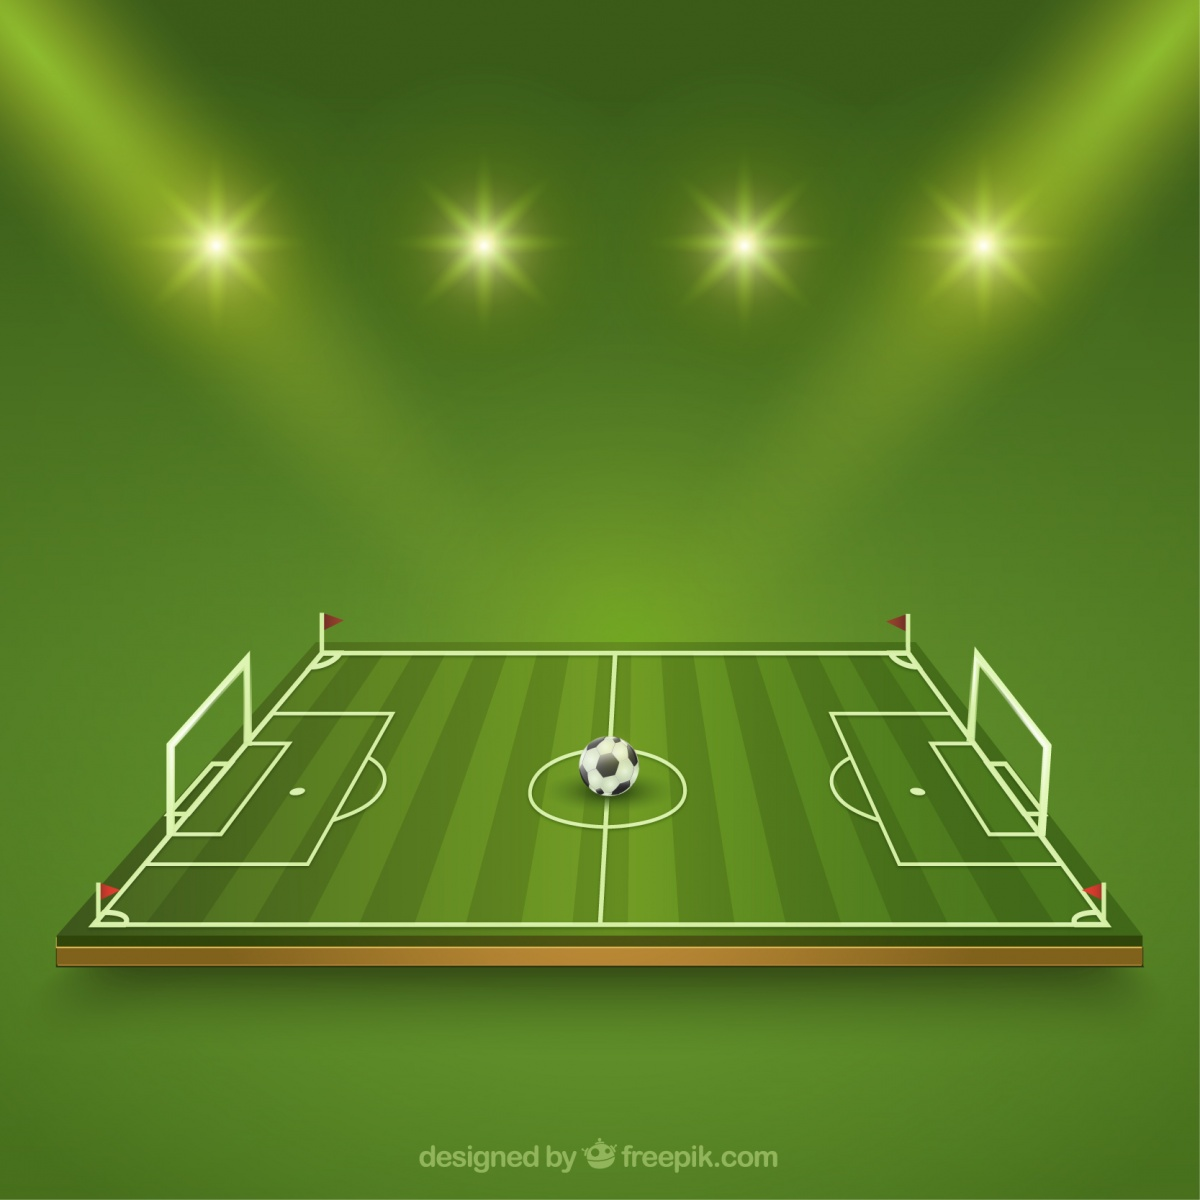 <a href='http://www.freepik.com/free-vector/football-field_787098.htm'>Designed by Freepik</a>